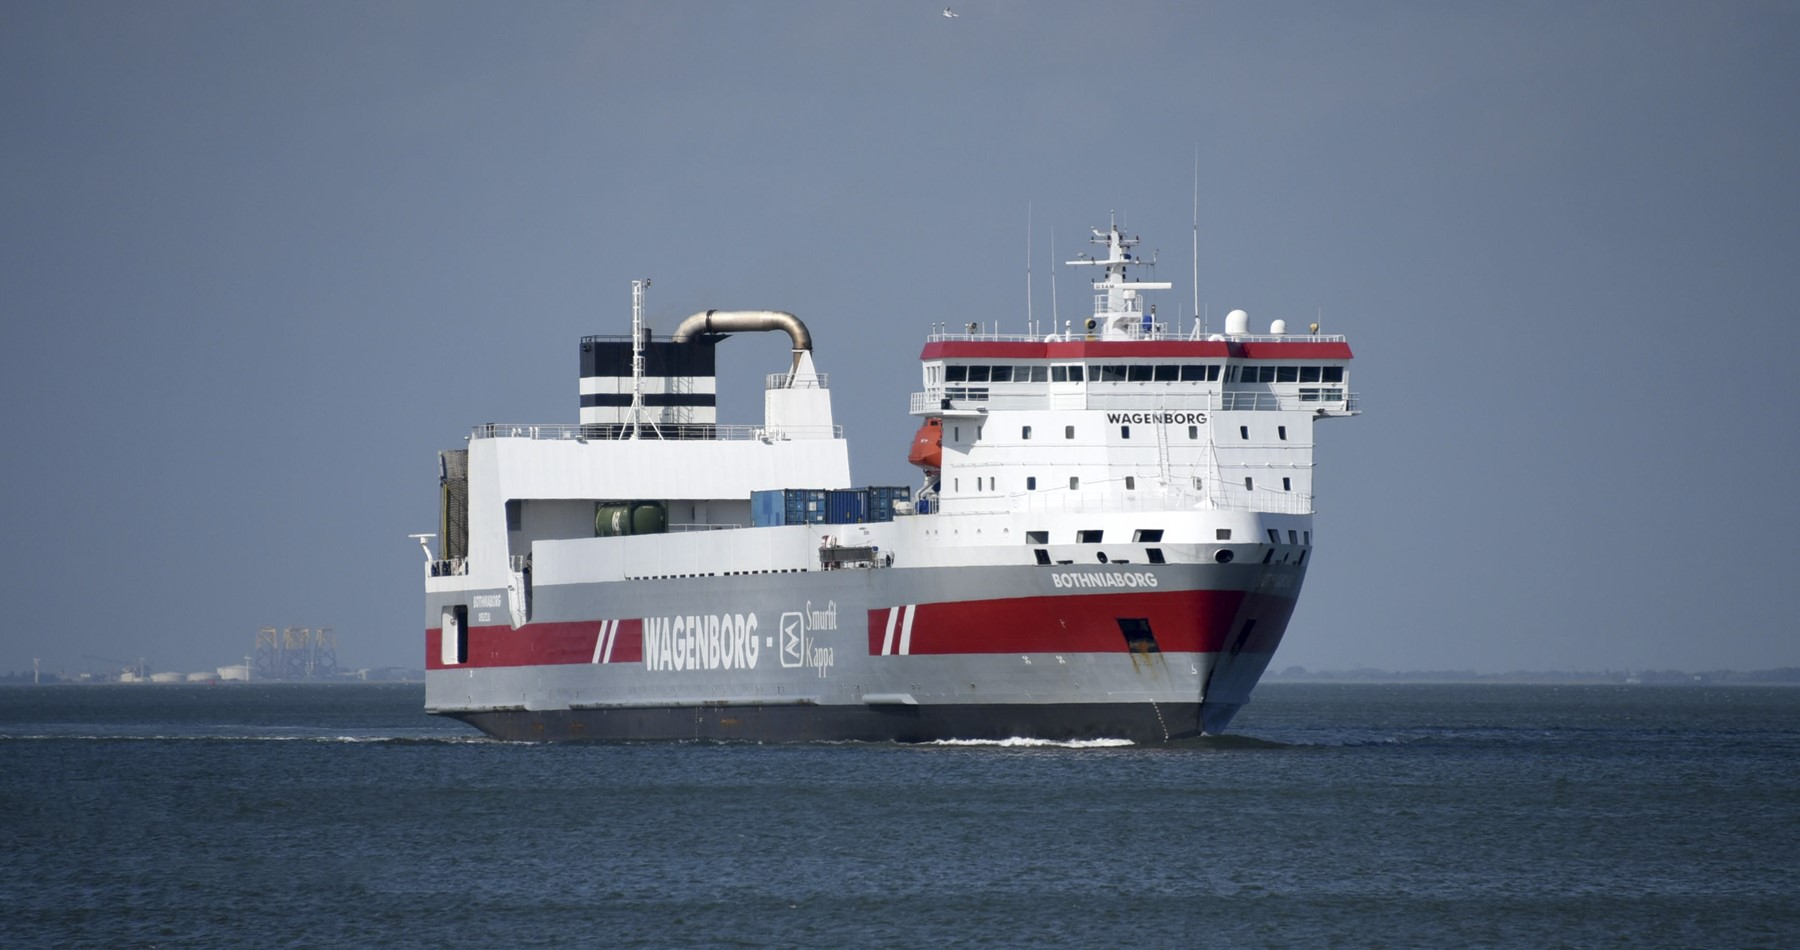 First vessels under Wagenborg agency in Terneuzen